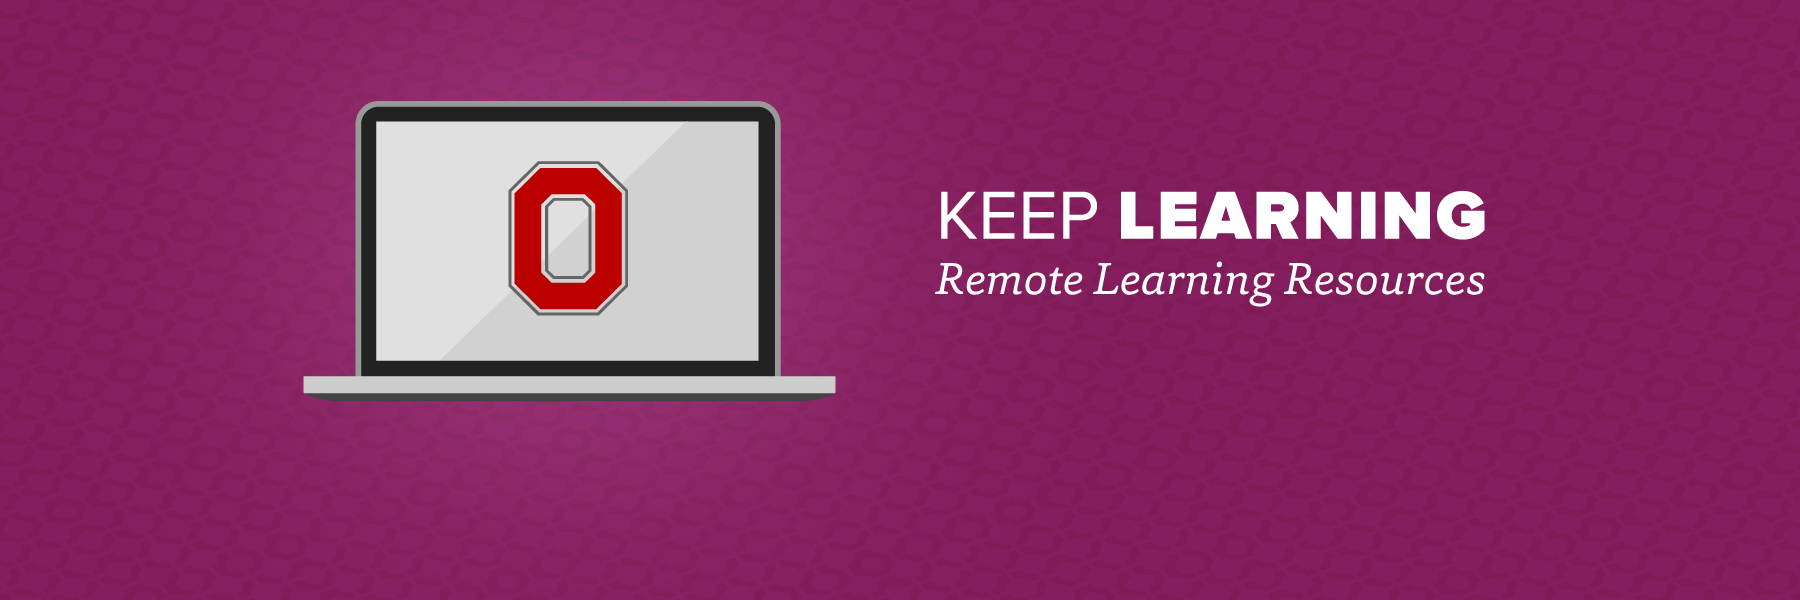 Keep Learning: Remote Learning Resources